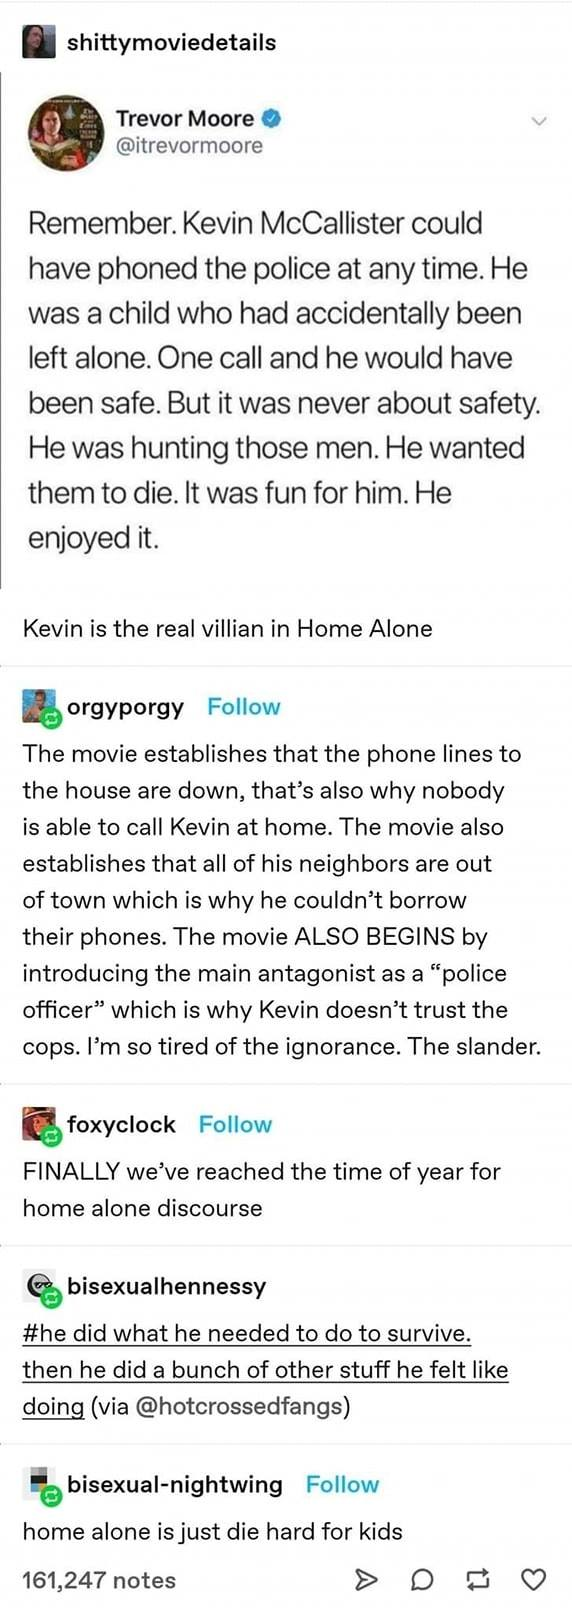 An Analysis of Home Alone